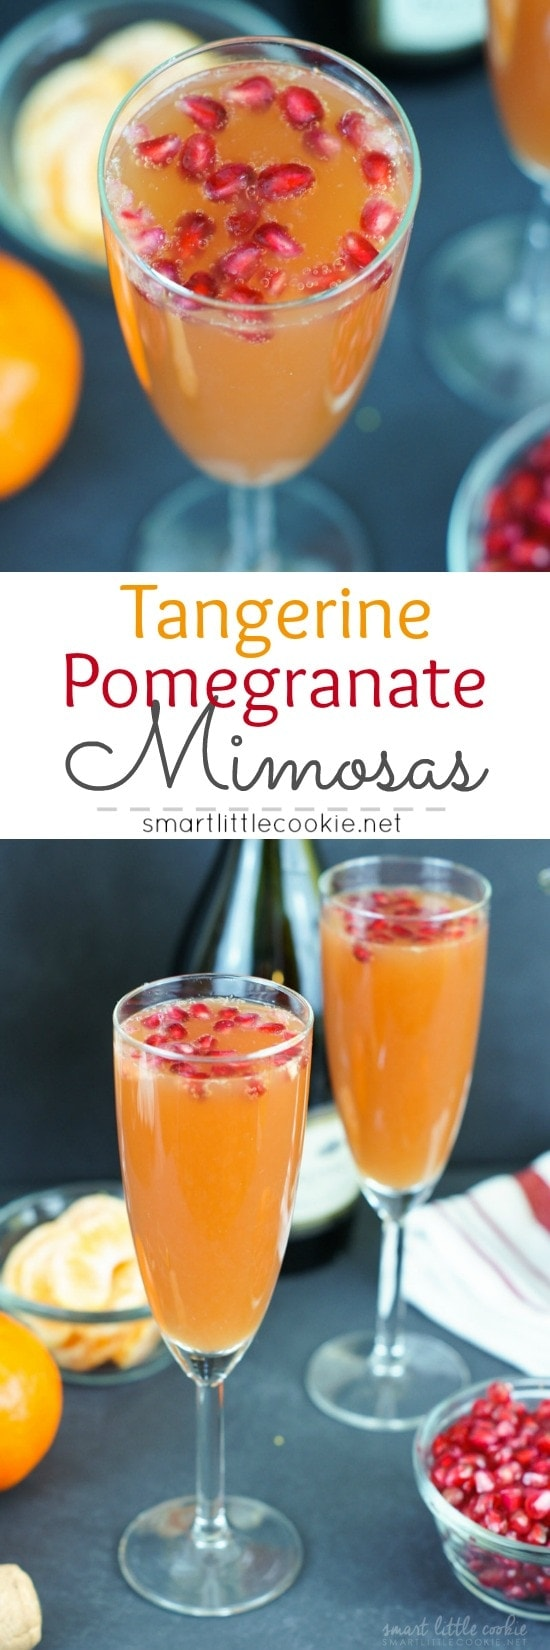 Tangerine Pomegranate Mimosa ~ A simple blend of tangerine juice, pomegranate juice and champagne makes a delicious bubbly and festive drink perfect for New Year's Eve!